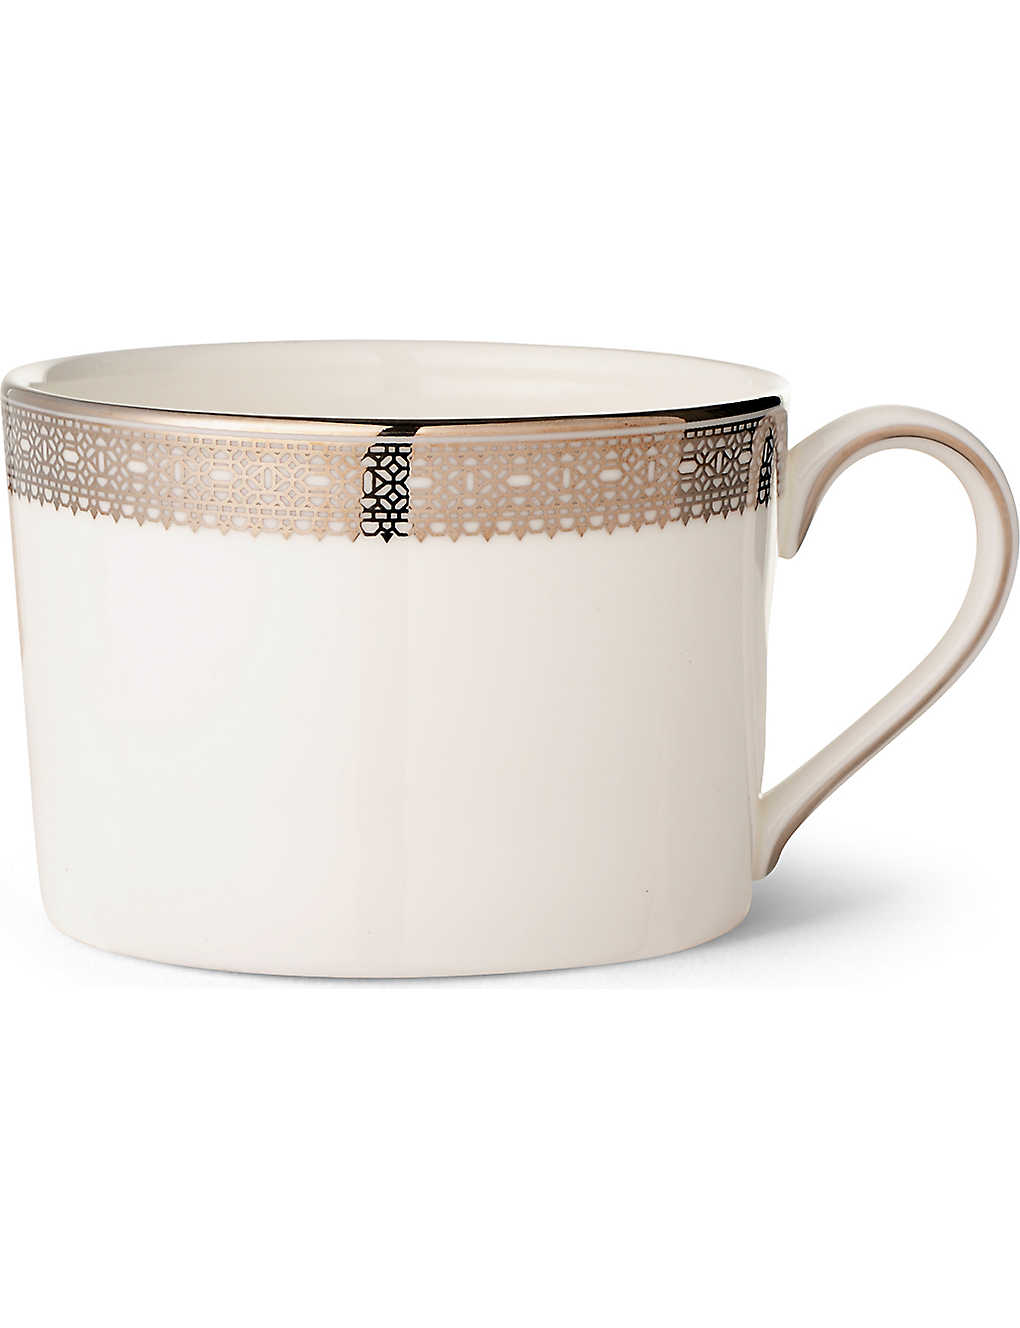 VERA WANG @ WEDGWOOD: Lace Platinum teacup